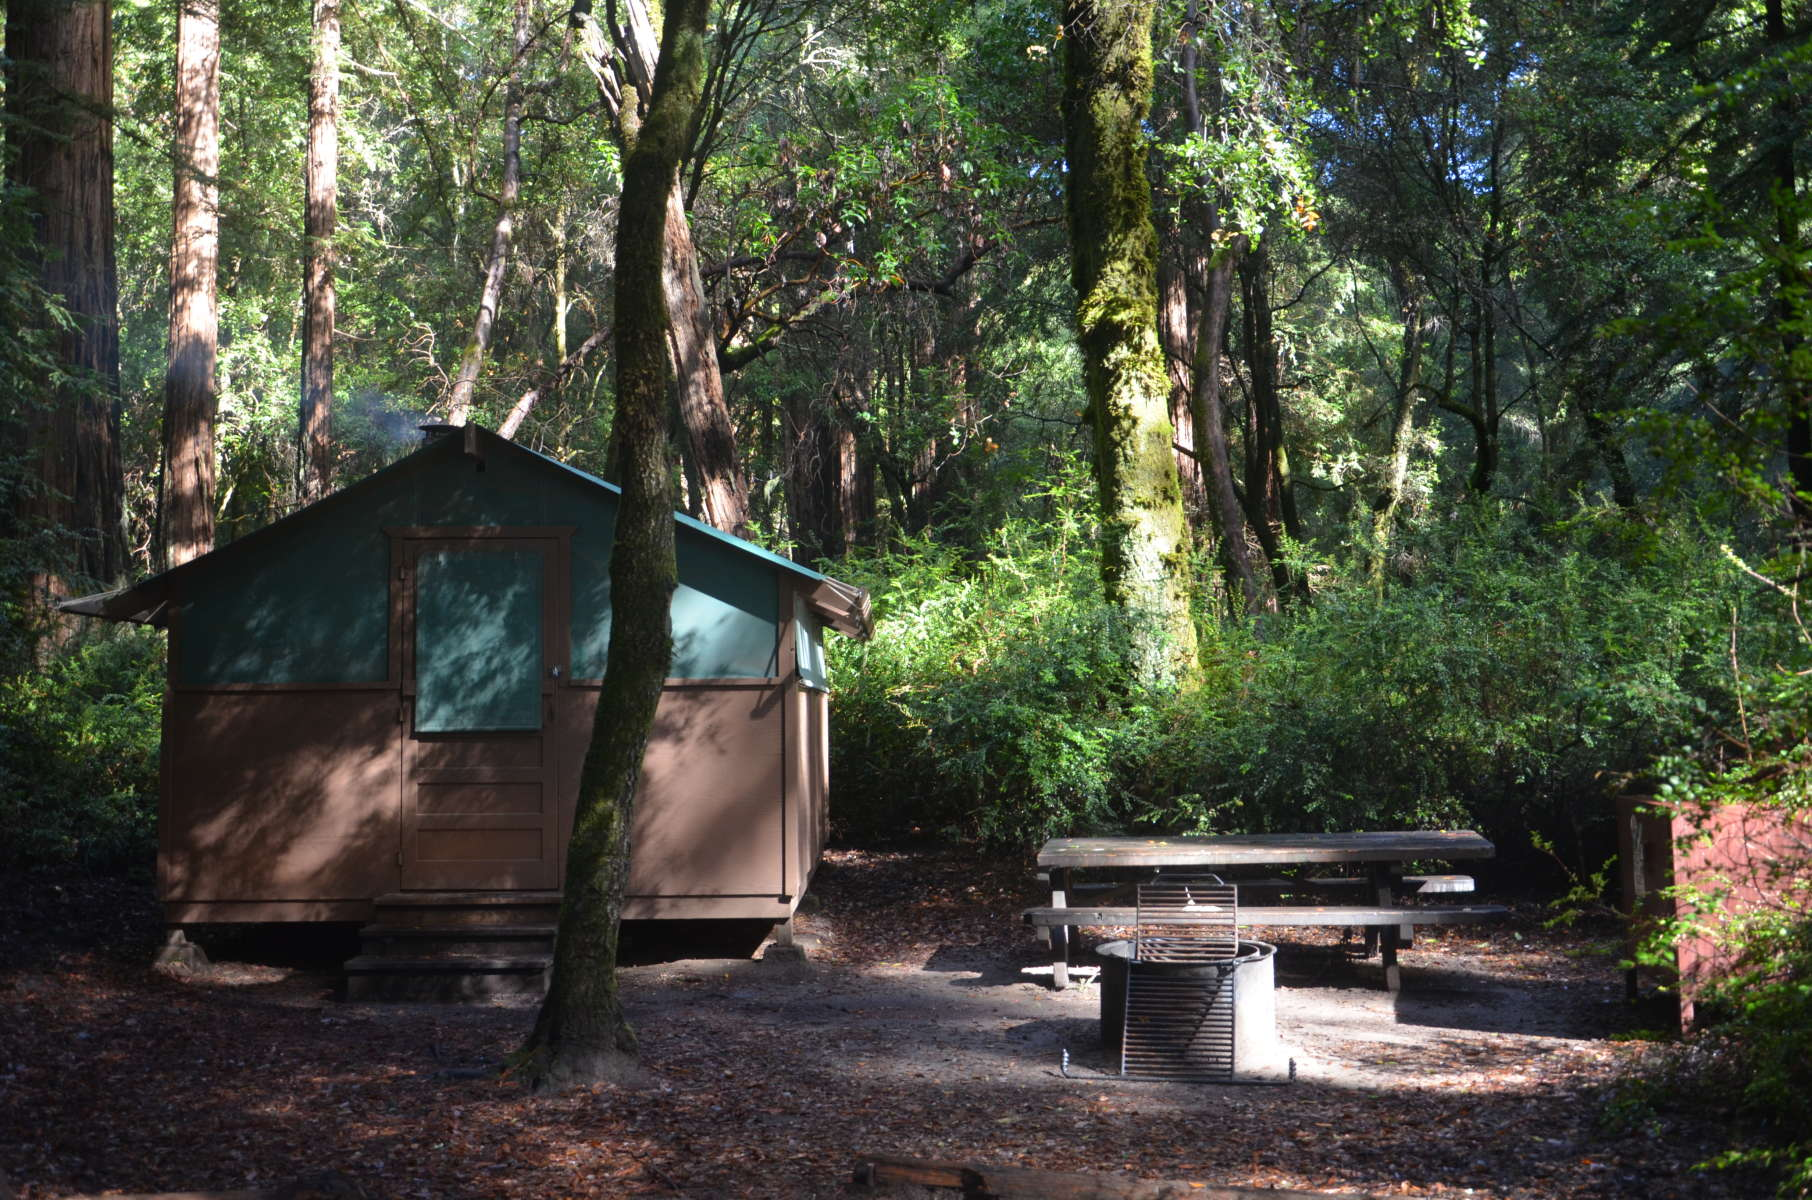 ... Aswin Ajaiy Kumaran M.u0027s Photo At Big Basin Tent Cabins ...